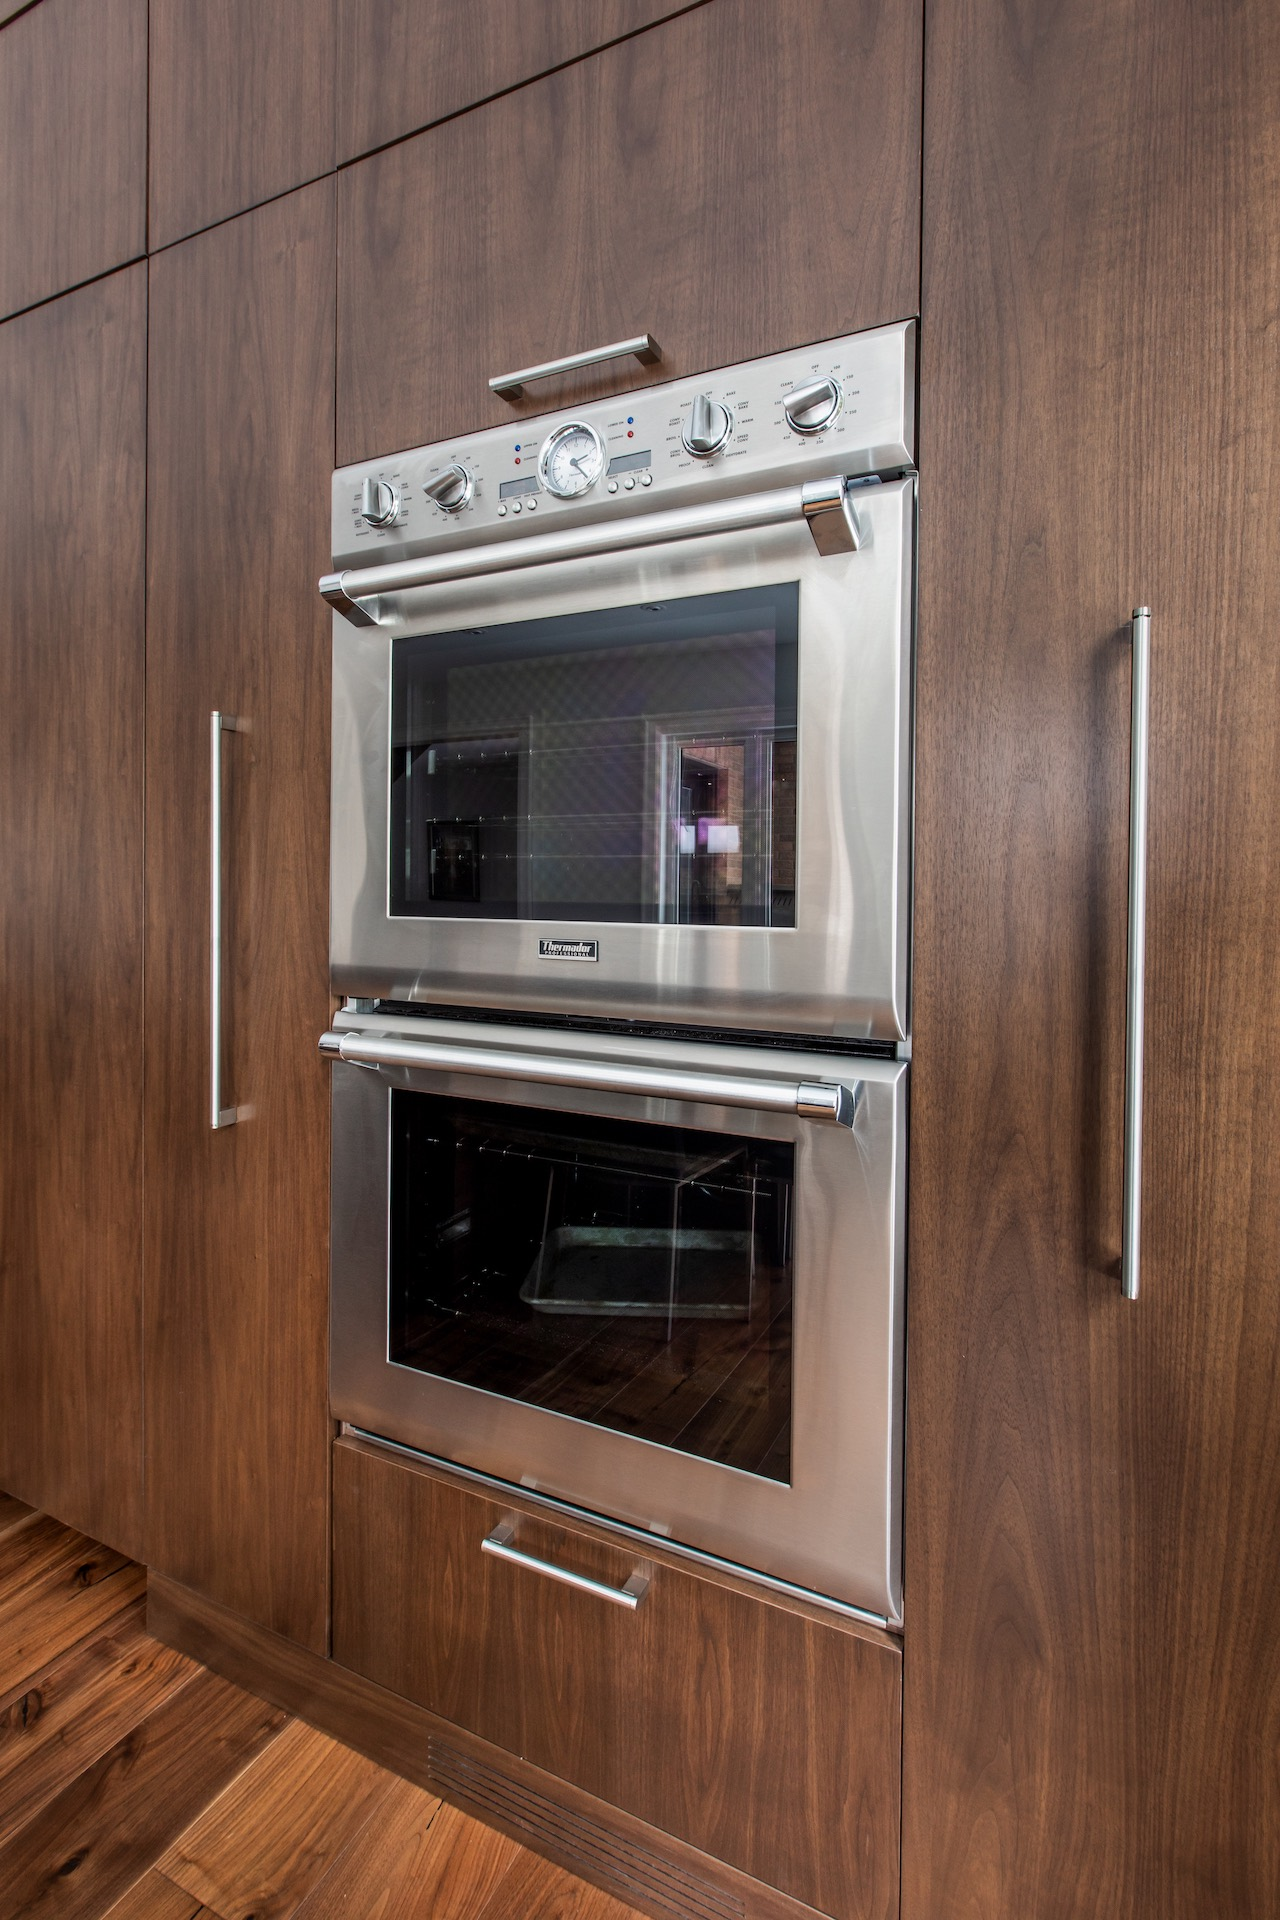 Wood cabinets with ovens